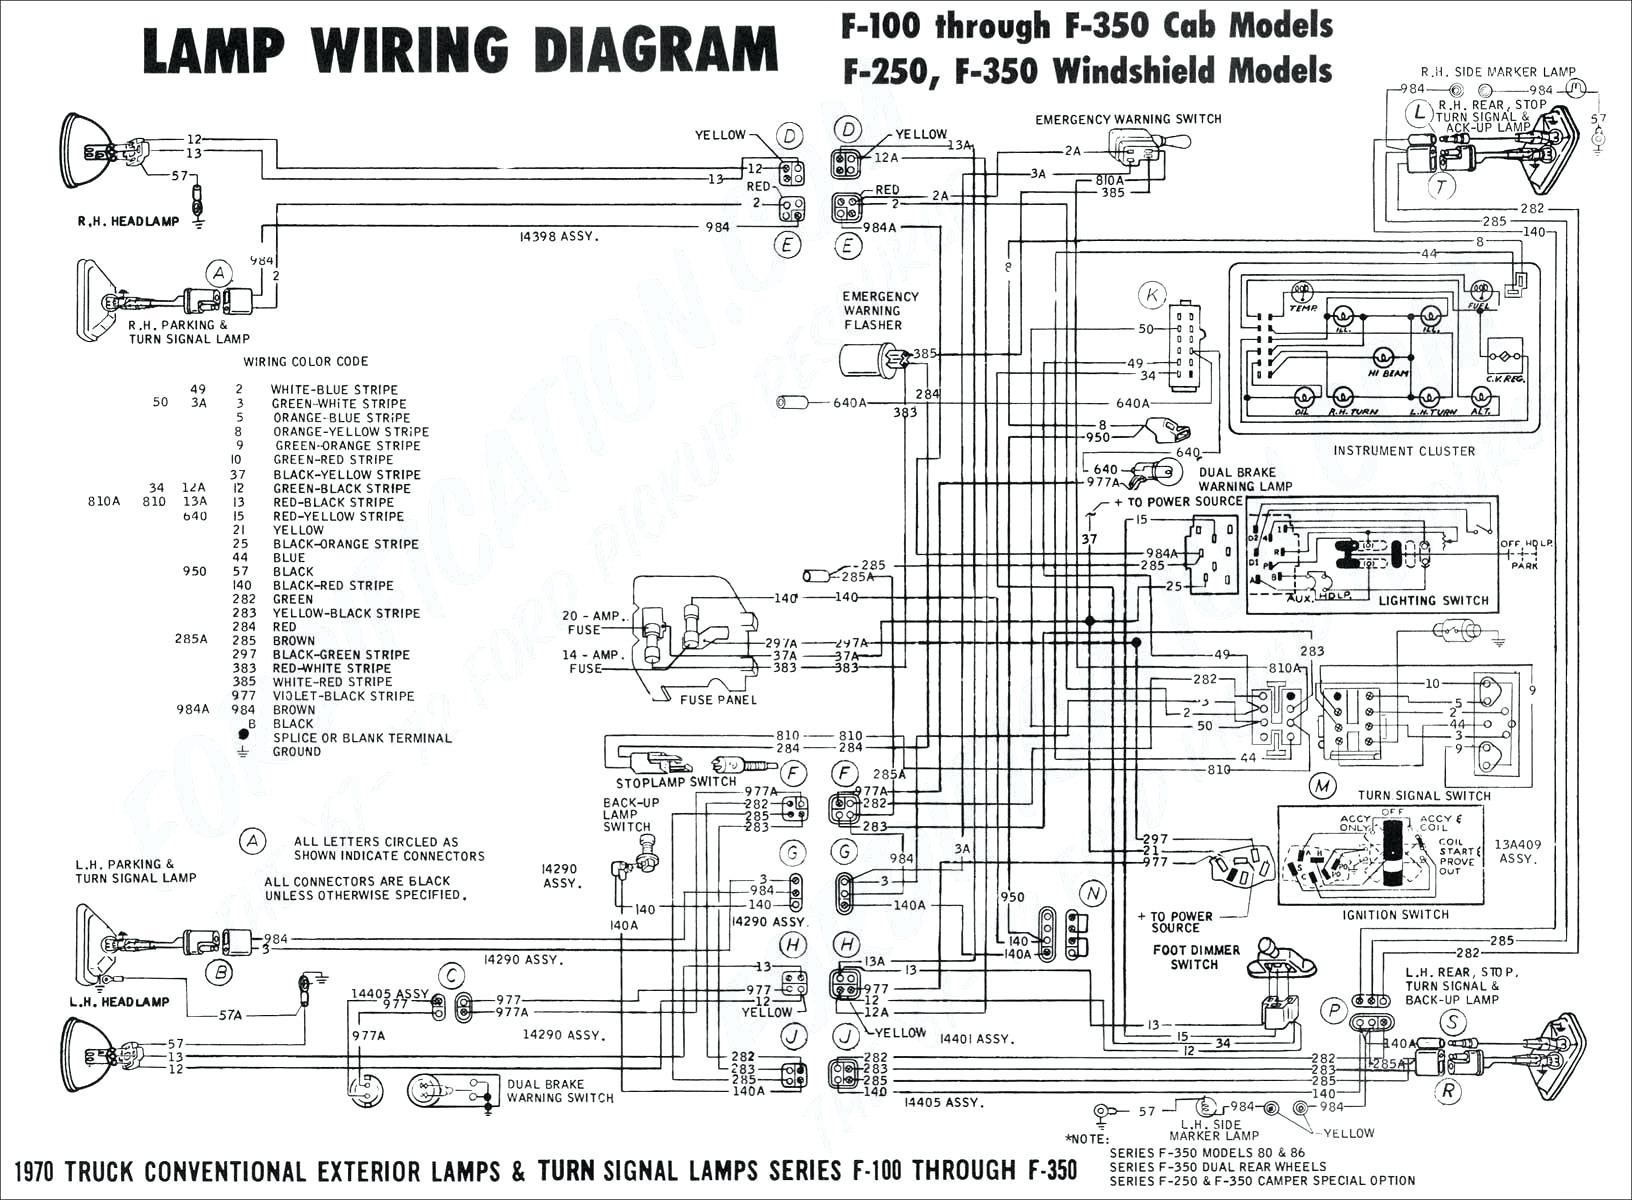 1991 Jeep Yj Tailight Wiring-diagram Pool Light Wiring Diagram